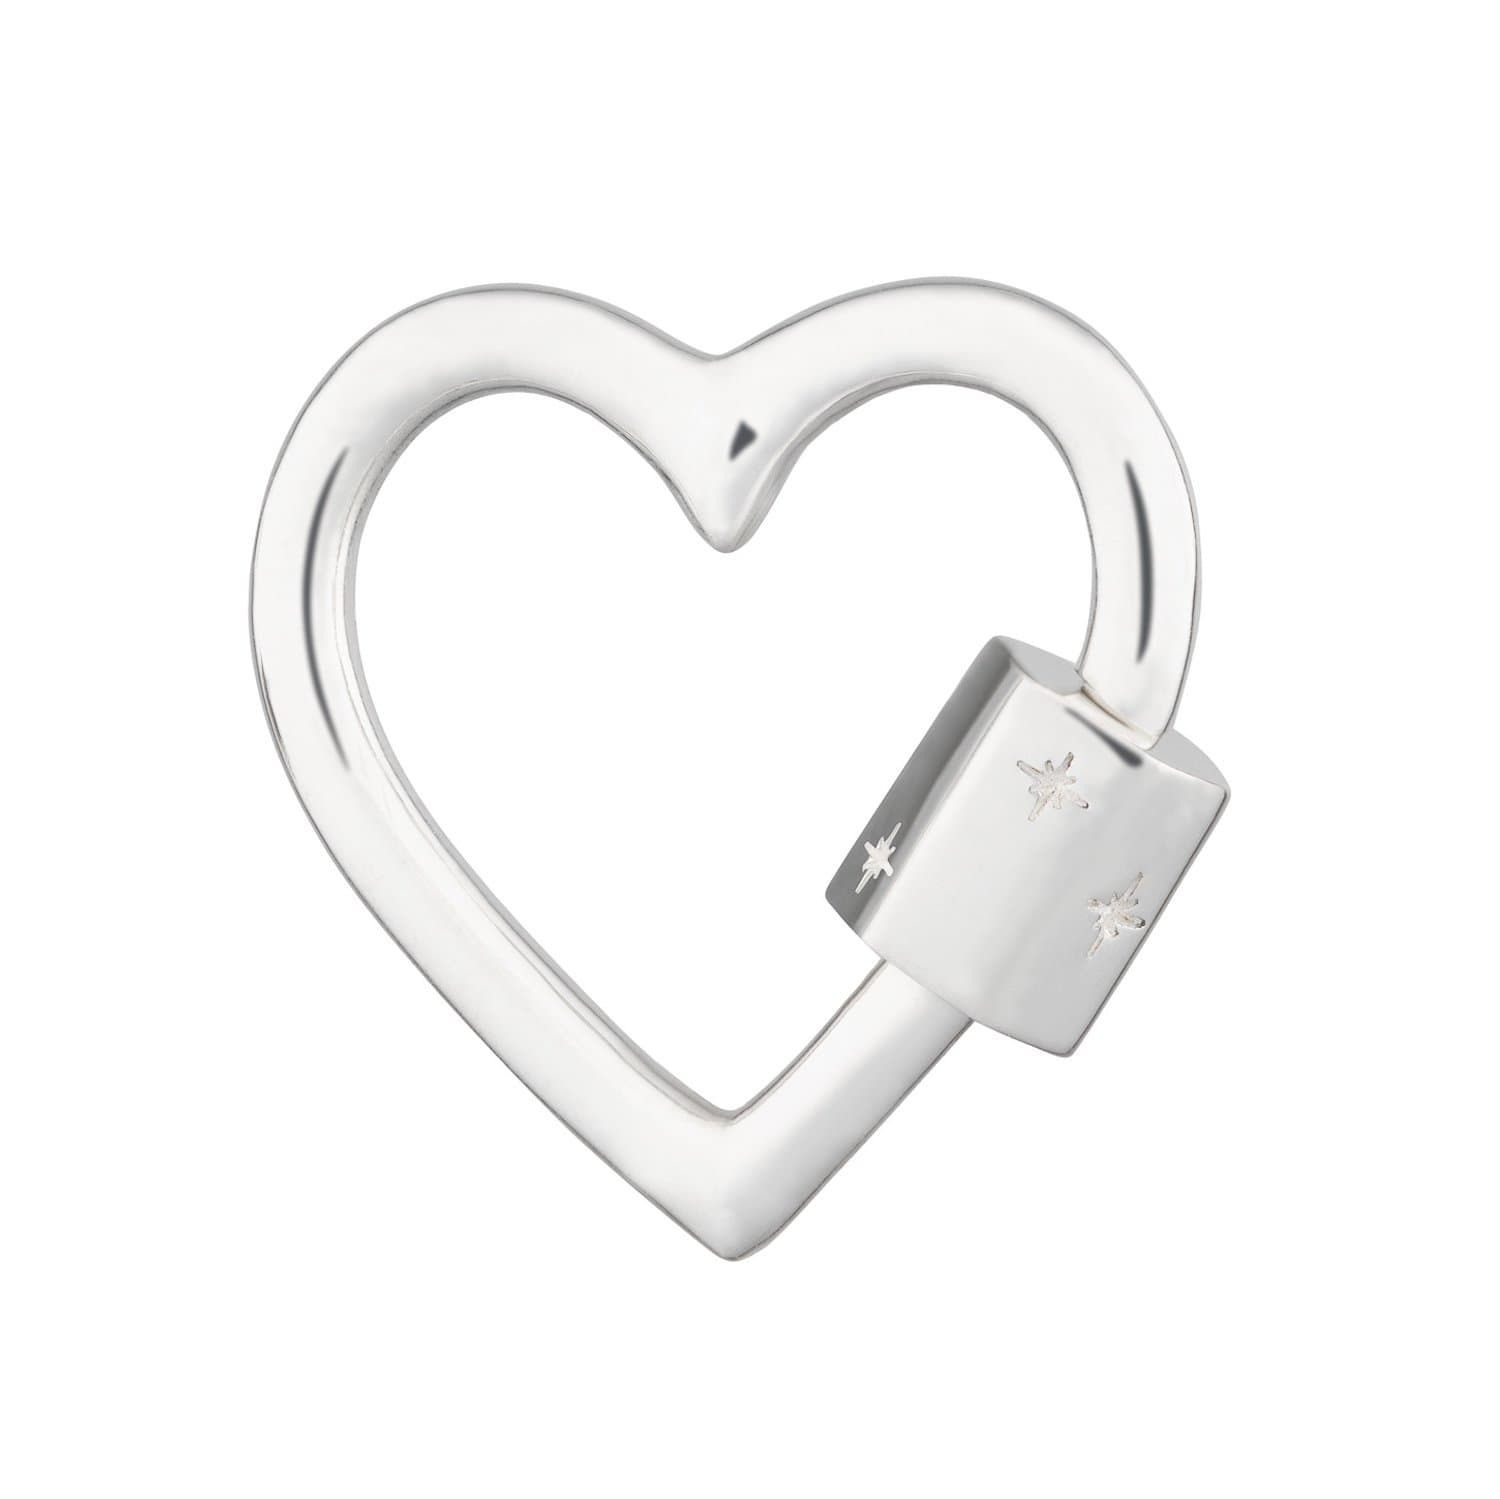 Silver Heart Carabiner Charm Lock by Lily Charmed